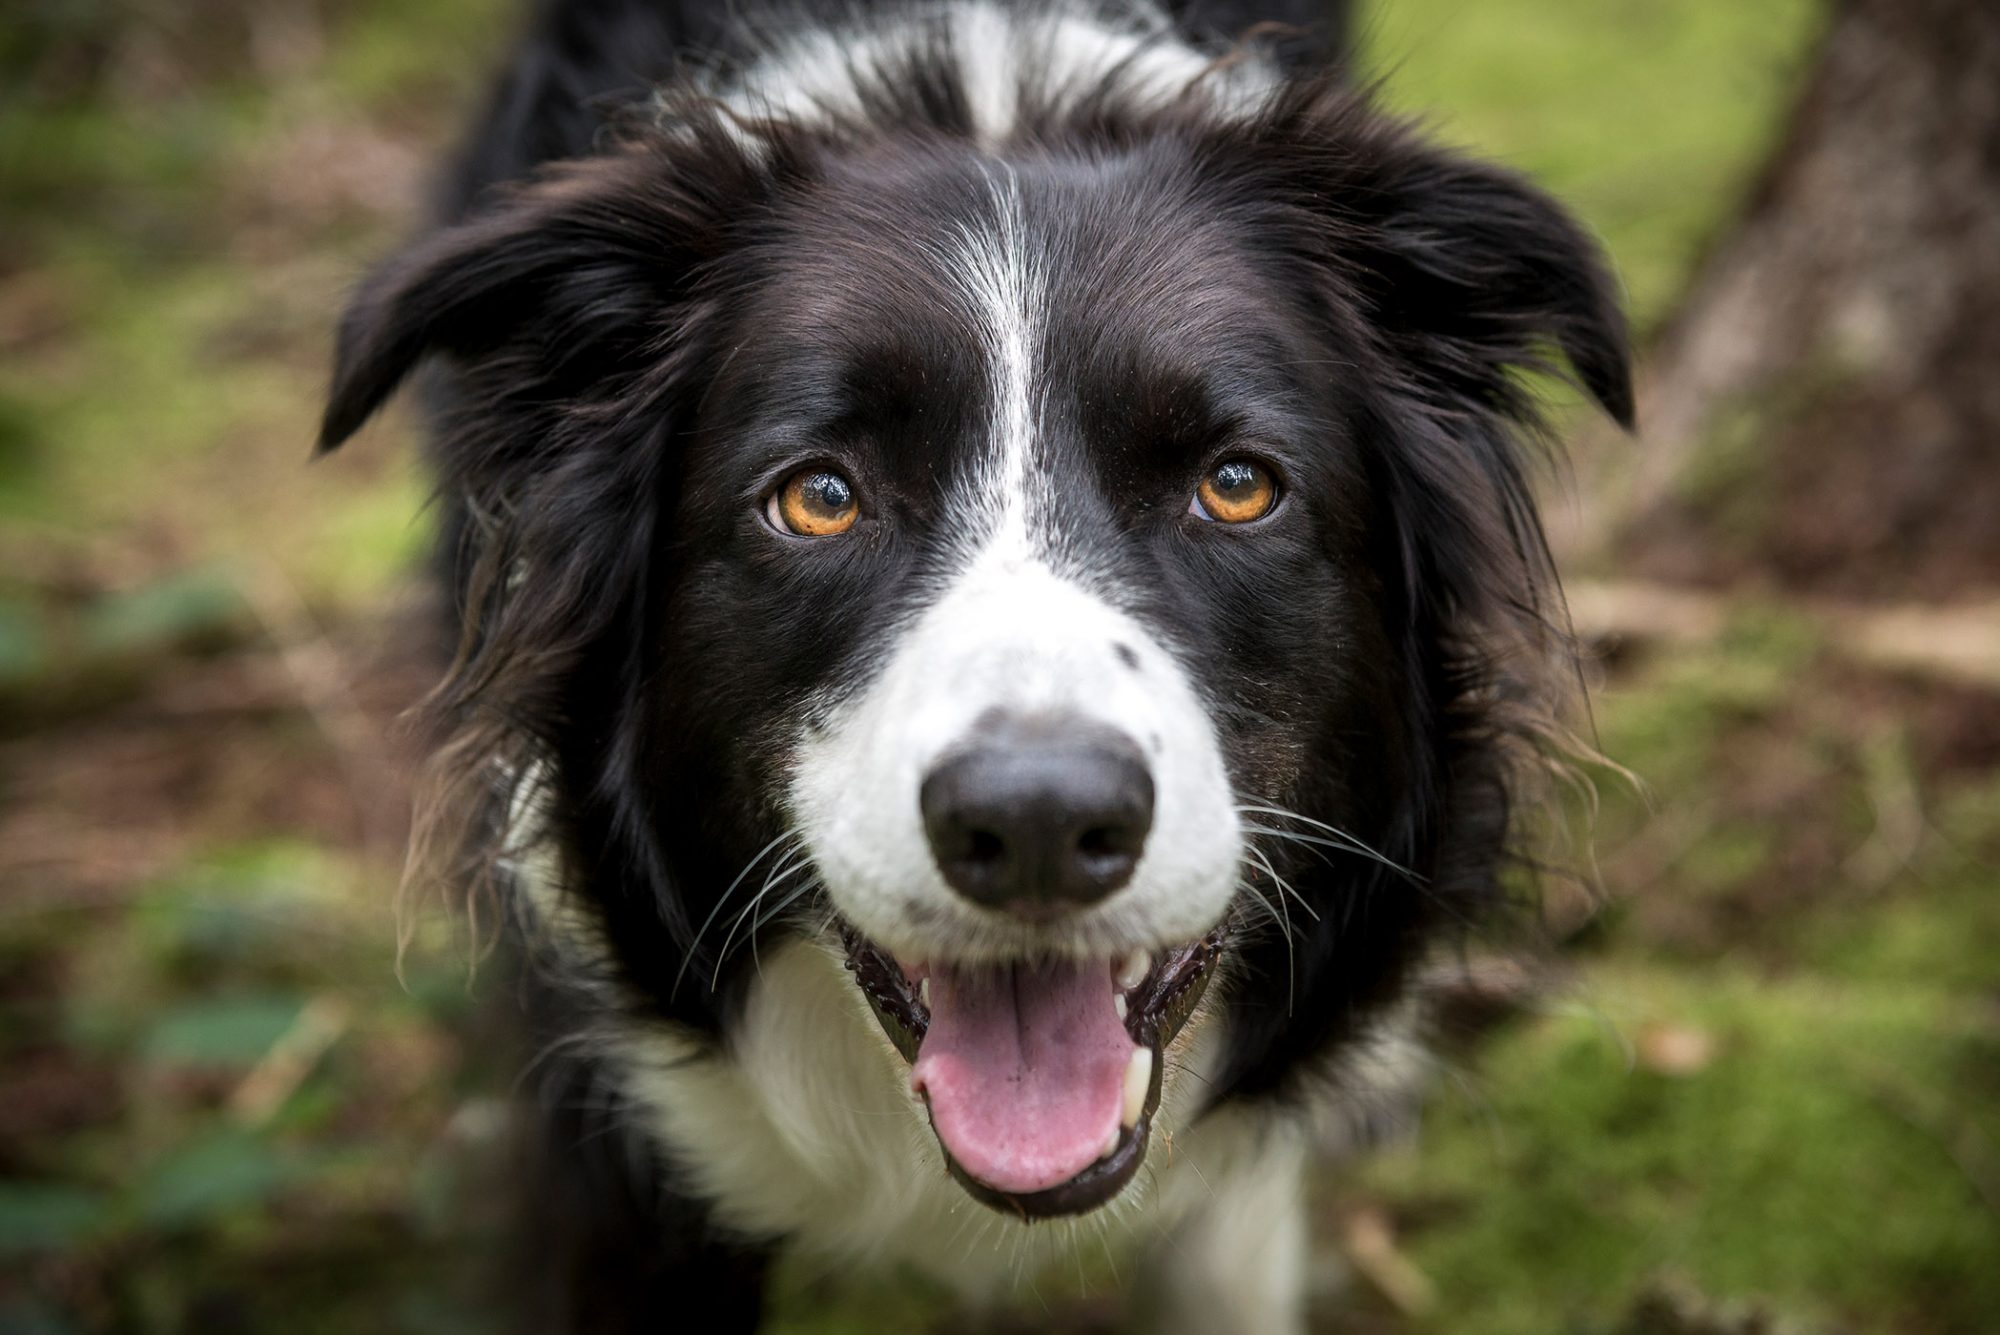 black-and-white border collie smiling at camera